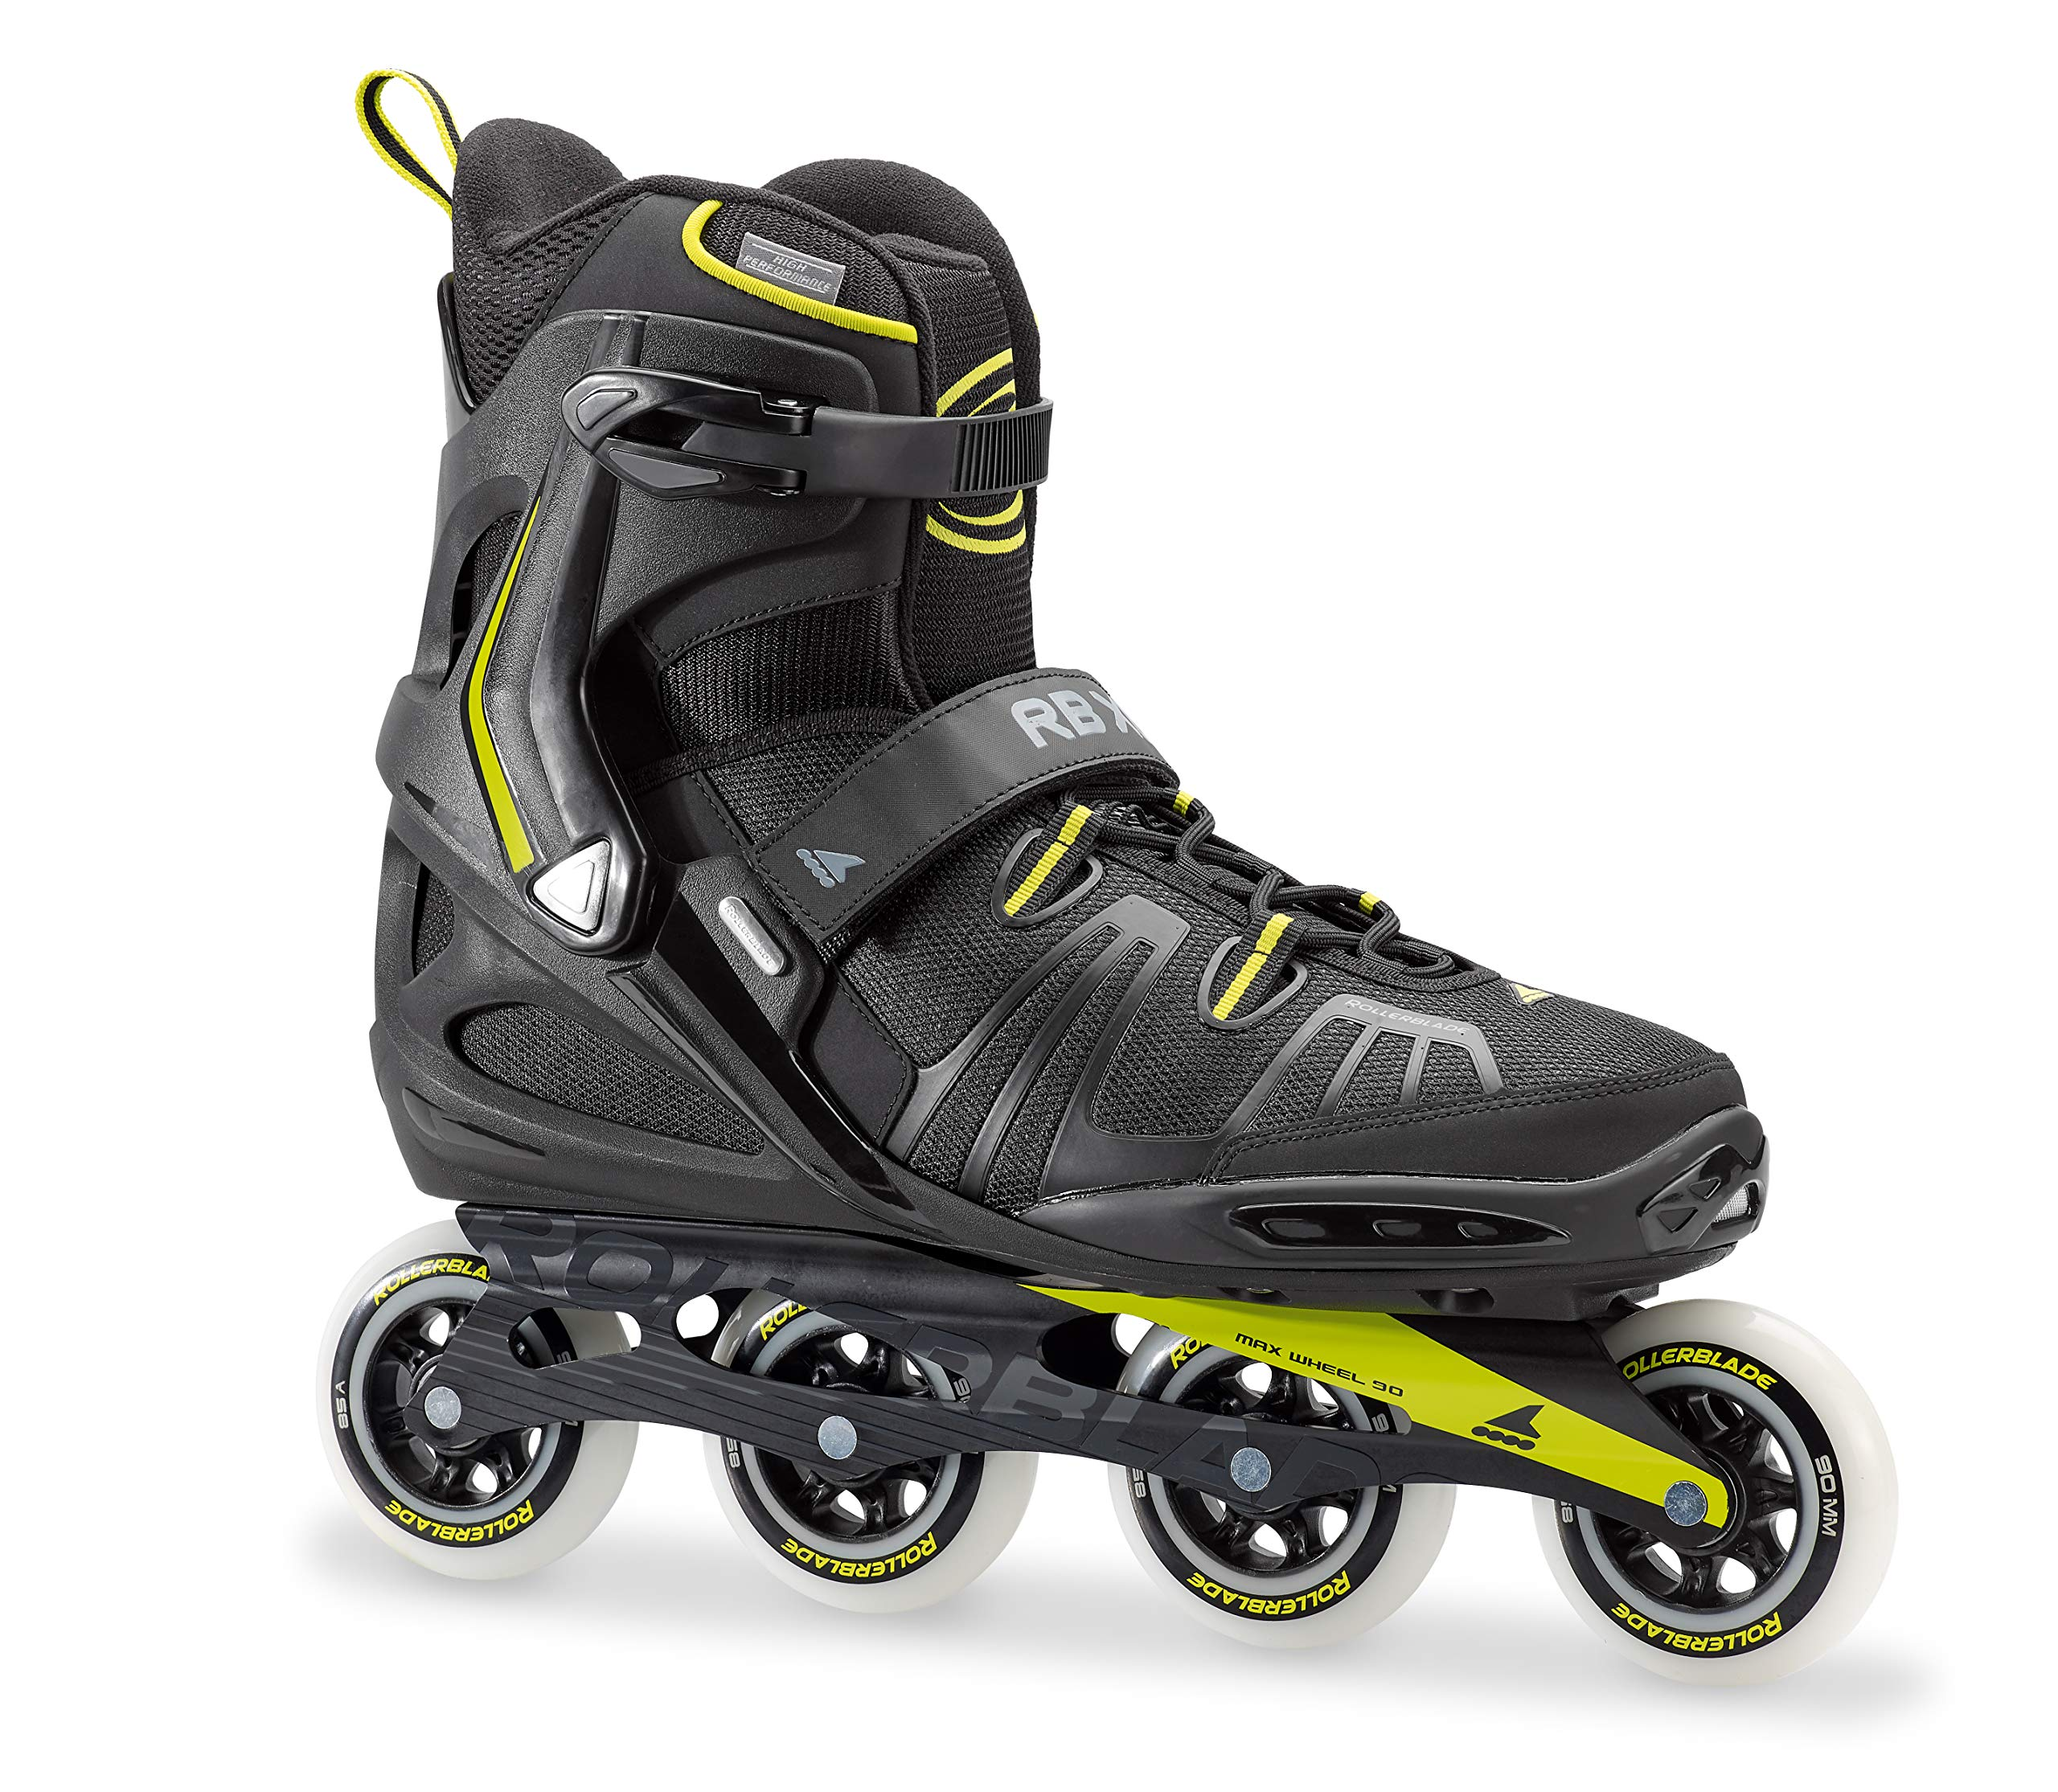 Rollerblade RB XL Men's Adult Fitness Inline Skate, Black and Lime, High Performance Inline Skates